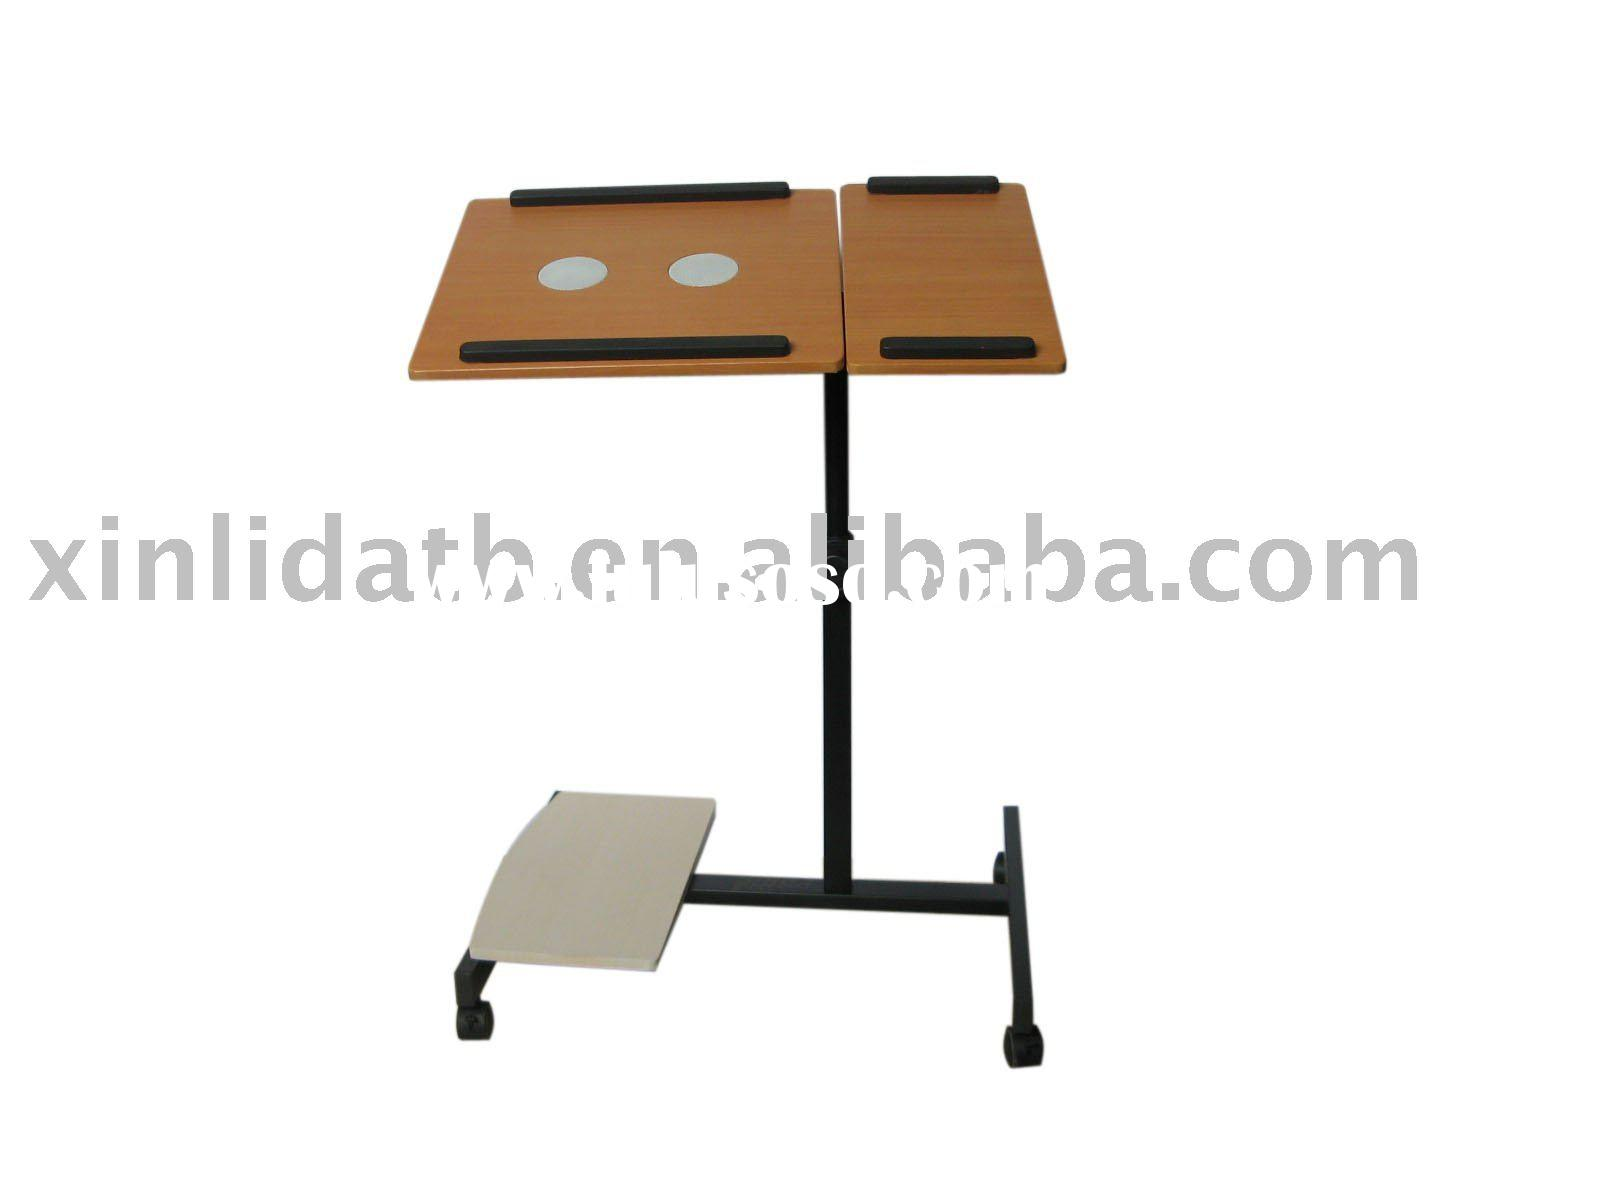 C-13 Adjustable Laptop table/Notebook stand